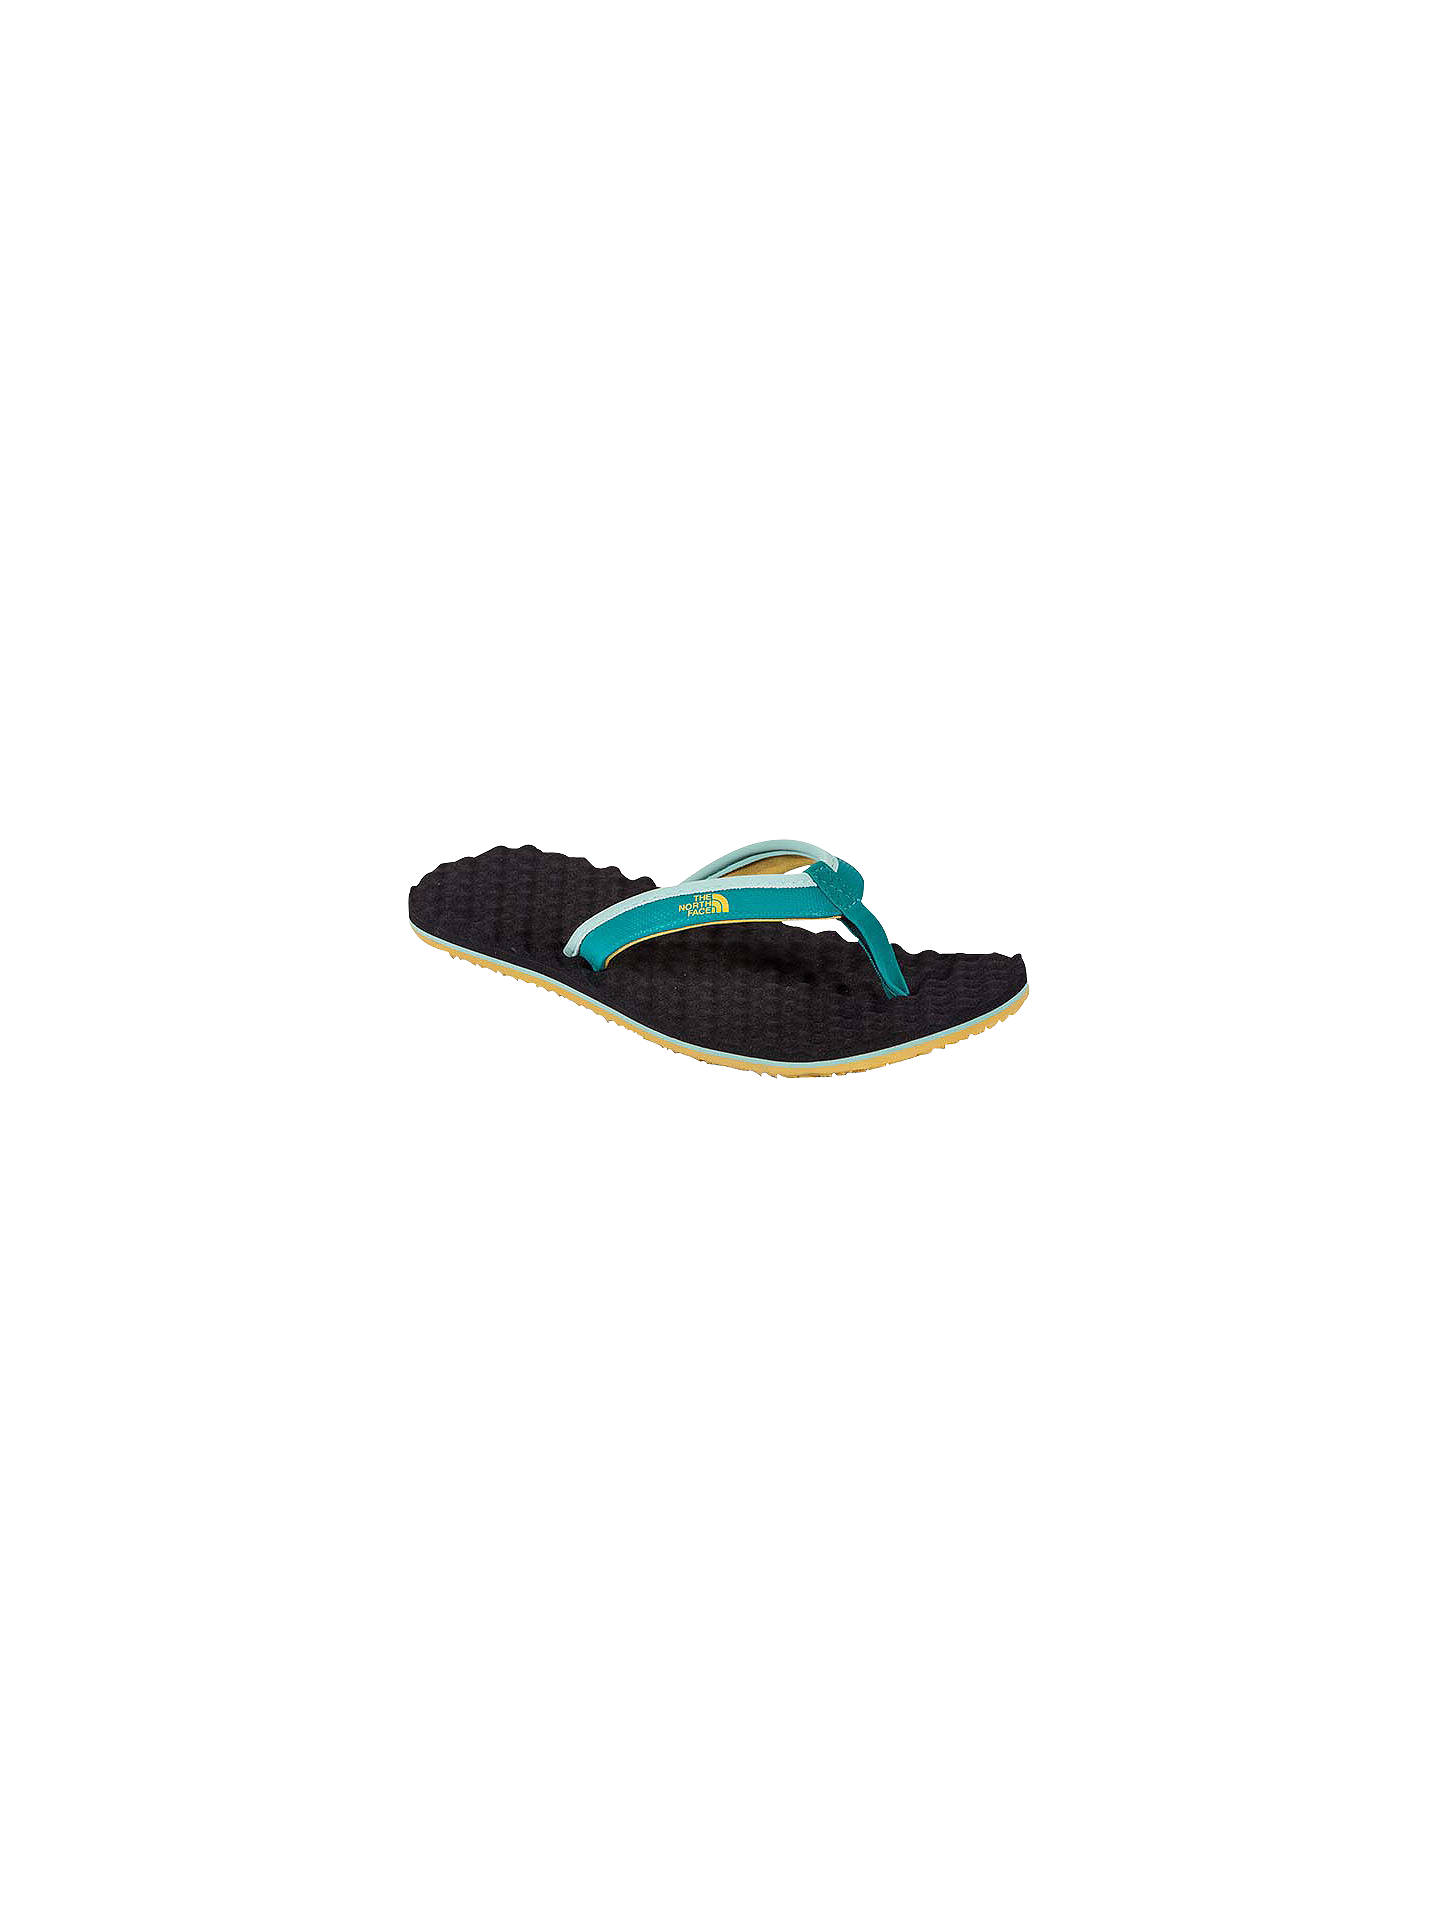 4b0543f53e4c The North Face Women s Base Camp Mini Flip-Flops at John Lewis ...